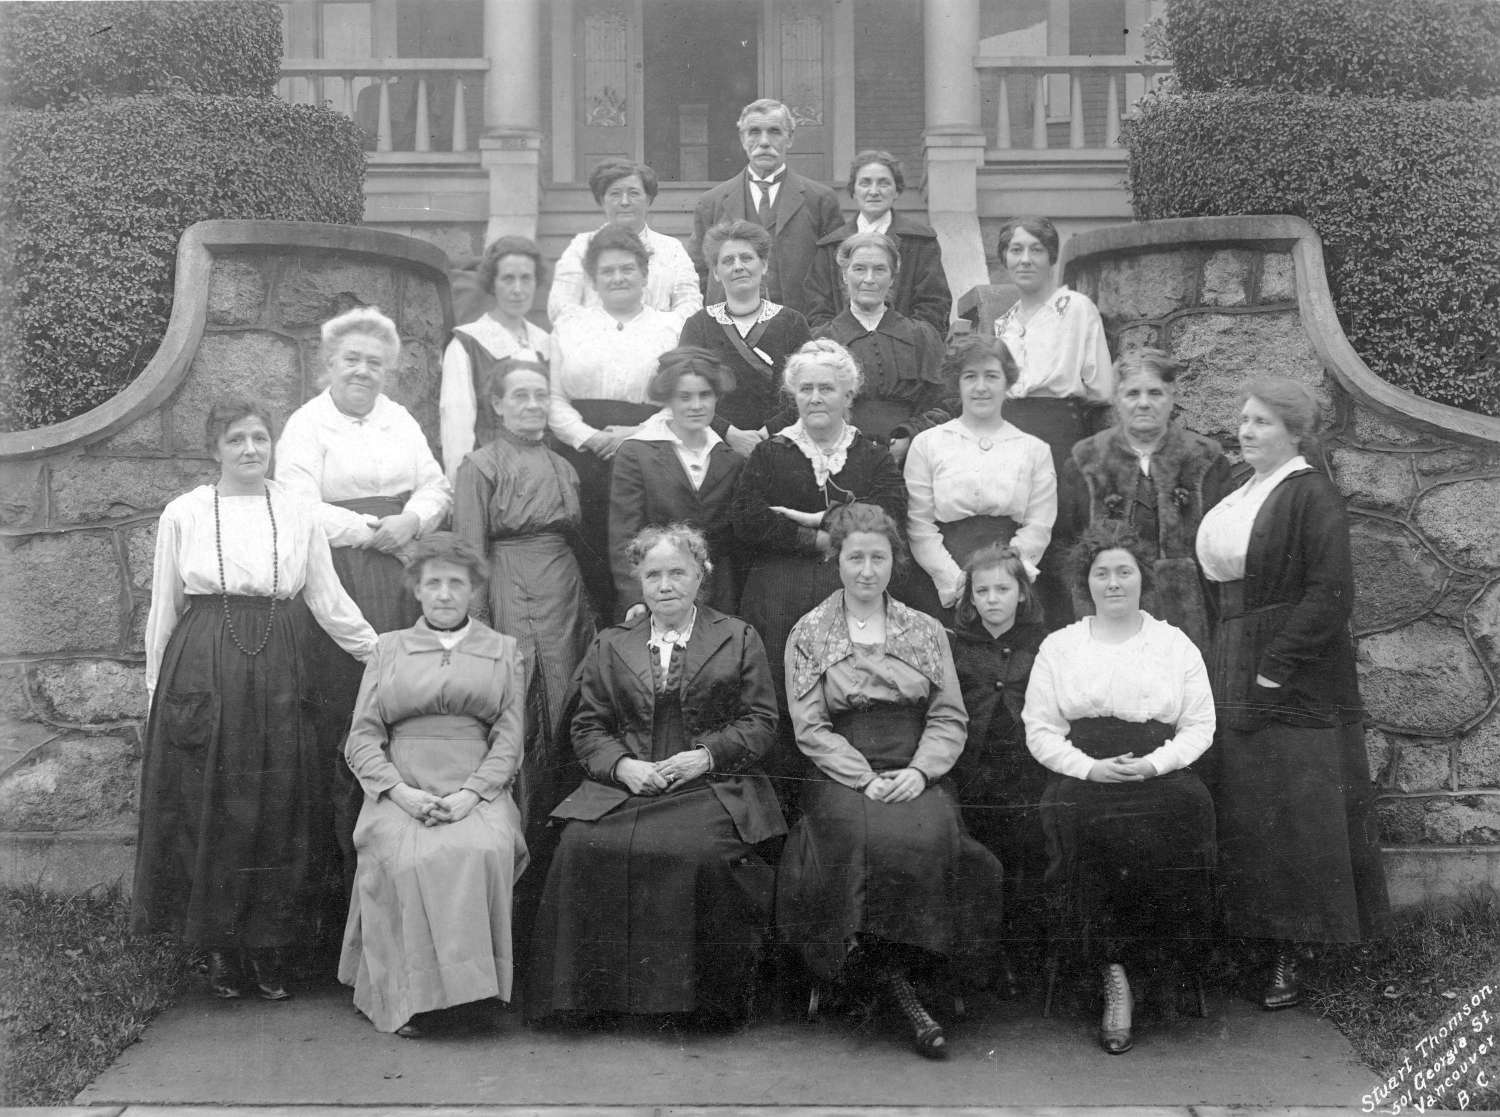 The St. Andrews' and Caledonian Society sewing group, 1913. Stuart Thomson, photographer. Reference code AM54-S4-: Ch P94